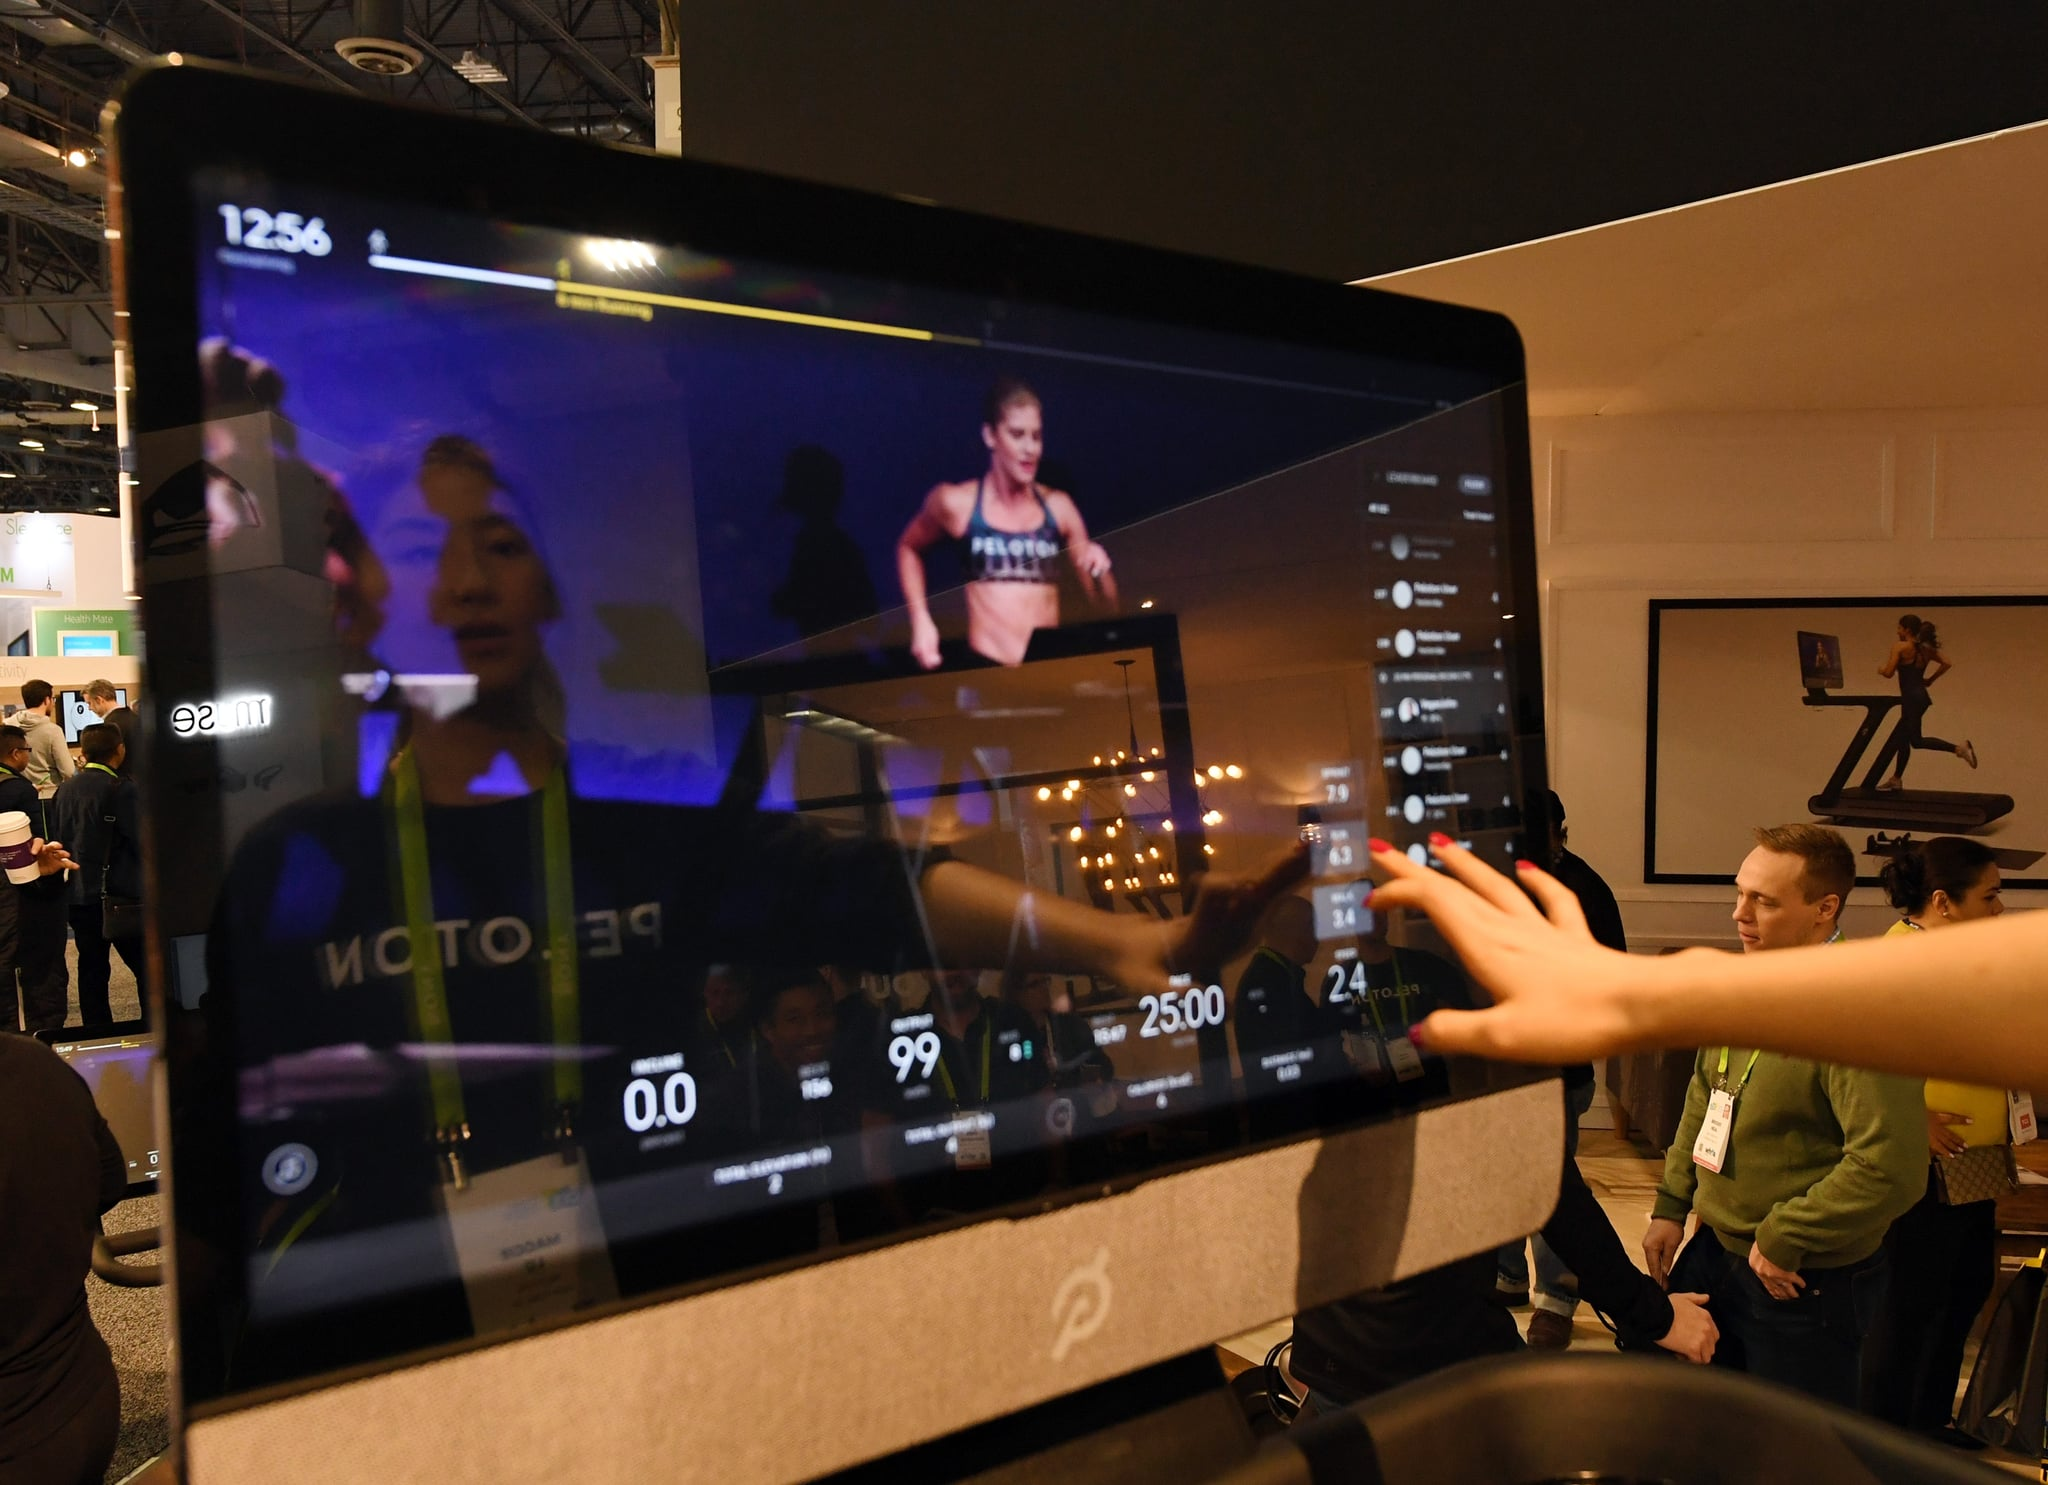 LAS VEGAS, NV - JANUARY 11:  Maggie Lu is reflected in a touch screen as she demonstrates how to select a class on a Peloton Tread treadmill during CES 2018 at the Las Vegas Convention Centre on January 11, 2018 in Las Vegas, Nevada. The USD 3,995 workout machine is expected to be available later this year and features a 32-inch touch screen that connects users to instructors giving live or on-demand fitness classes. CES, the world's largest annual consumer technology trade show, runs through January 12 and features about 3,900 exhibitors showing off their latest products and services to more than 170,000 attendees.  (Photo by Ethan Miller/Getty Images)